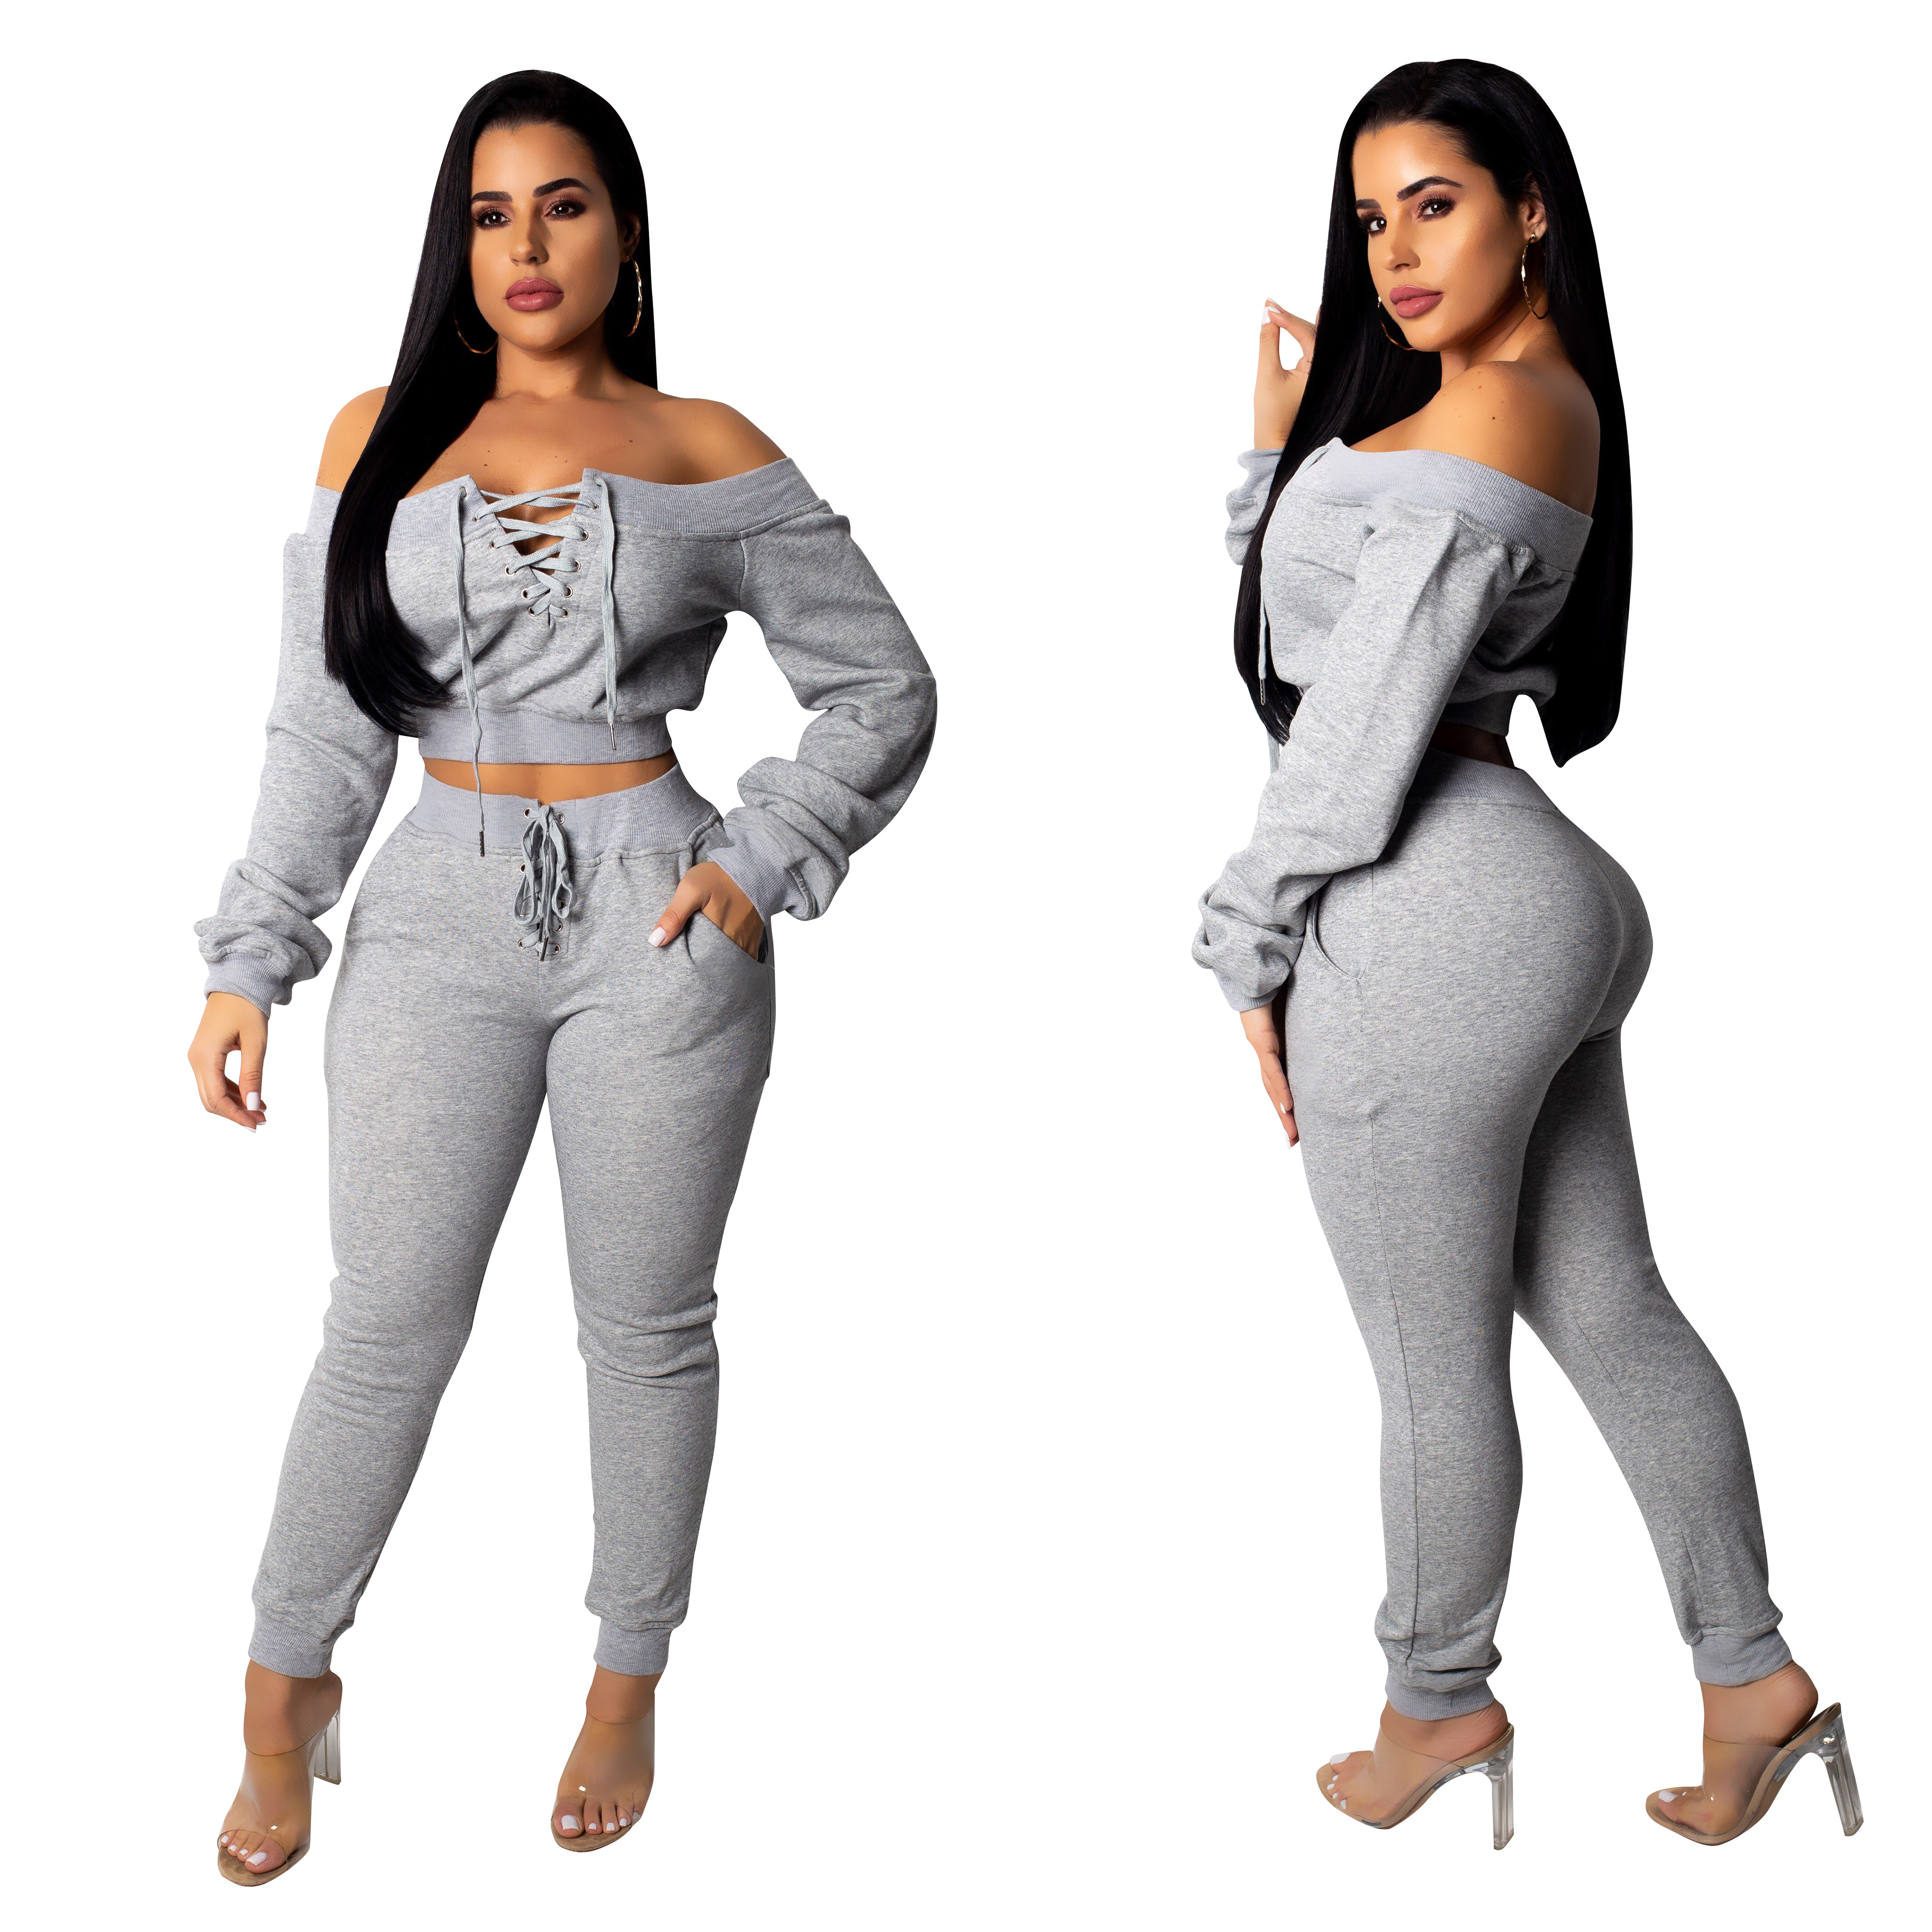 Echoine Women Two Piece Sets Multi-color sweater pull-eyes fashion casual suit sexy bandage crop tops + long pants autumn winter